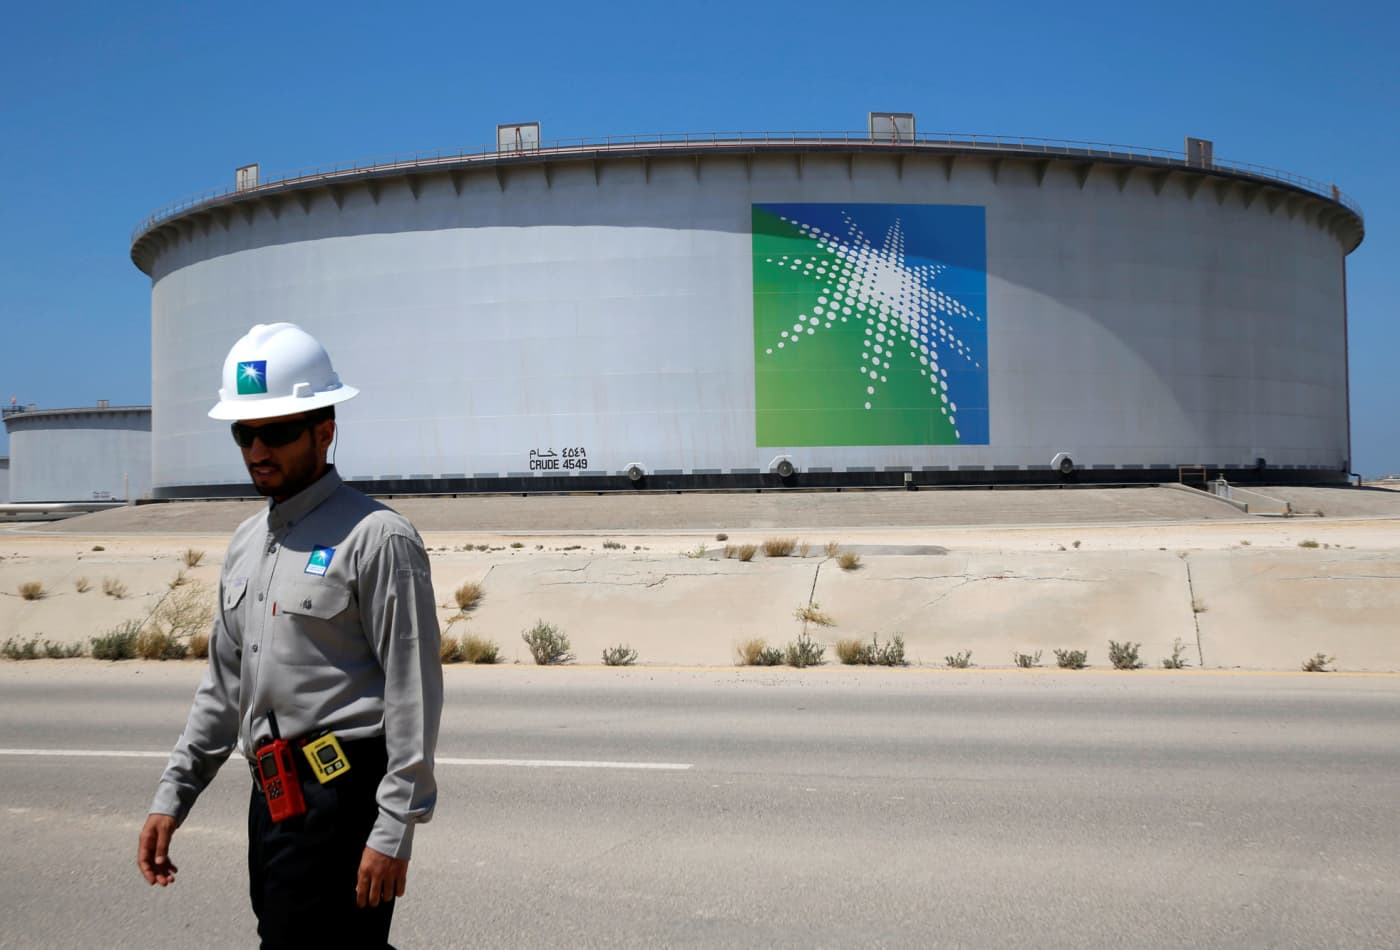 Saudi Aramco will expand into international oil and gas exploration: FT